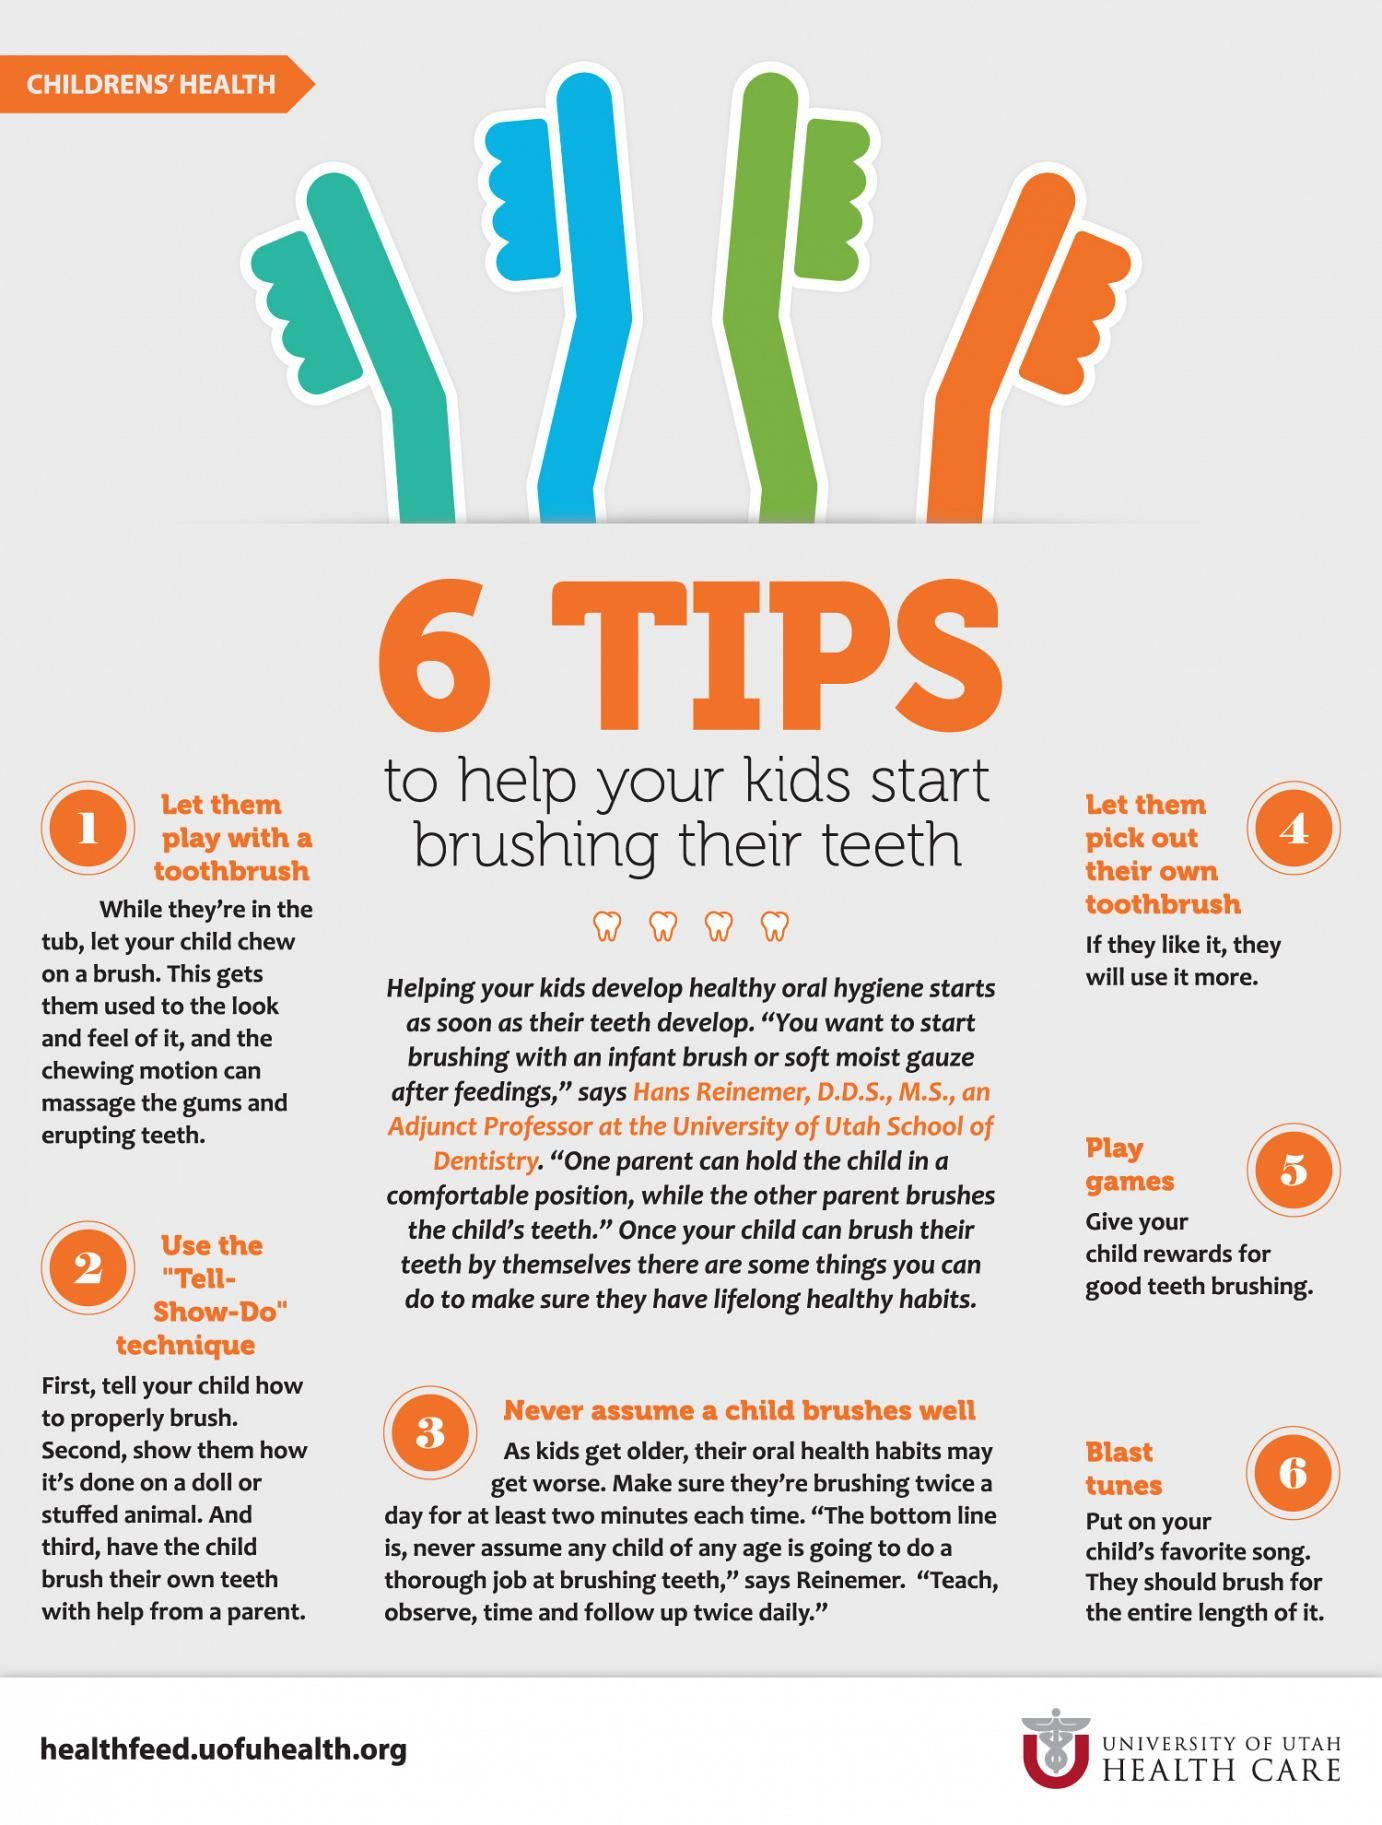 Tips For Teaching Your Child Healthy Teeth Brushing Habits